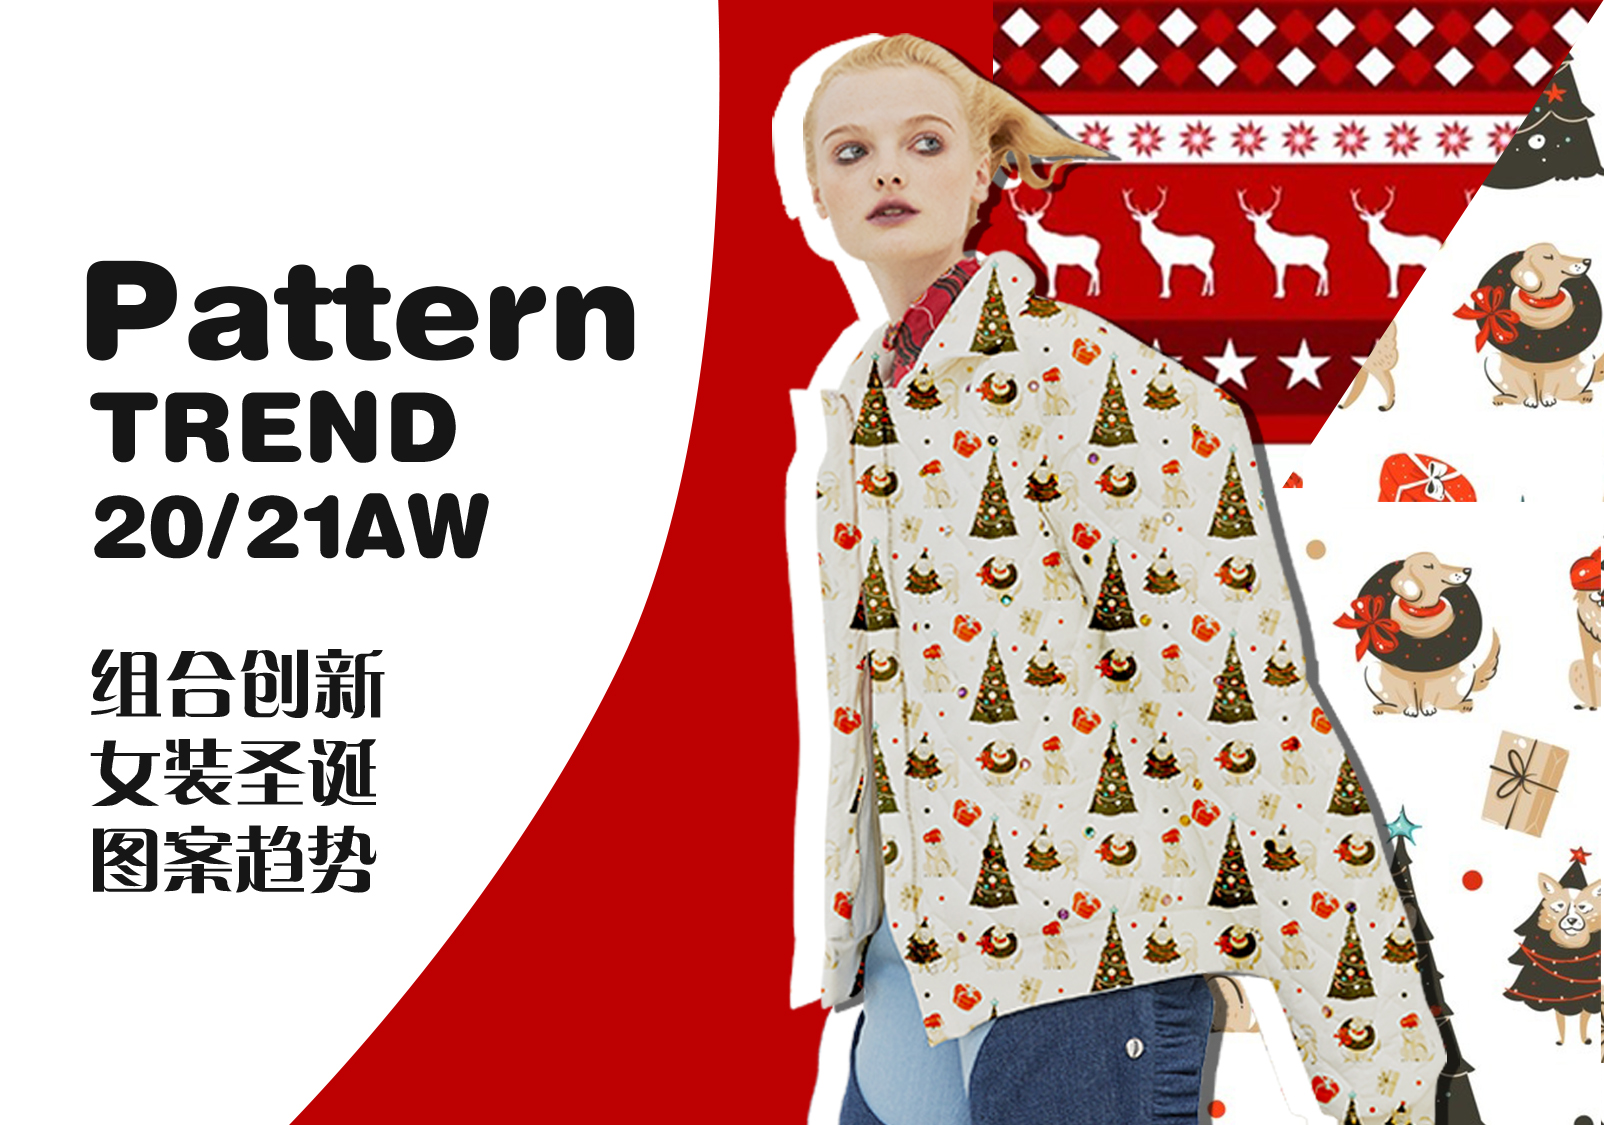 Novel Combinations -- The Christmas Pattern Trend for Womenswear